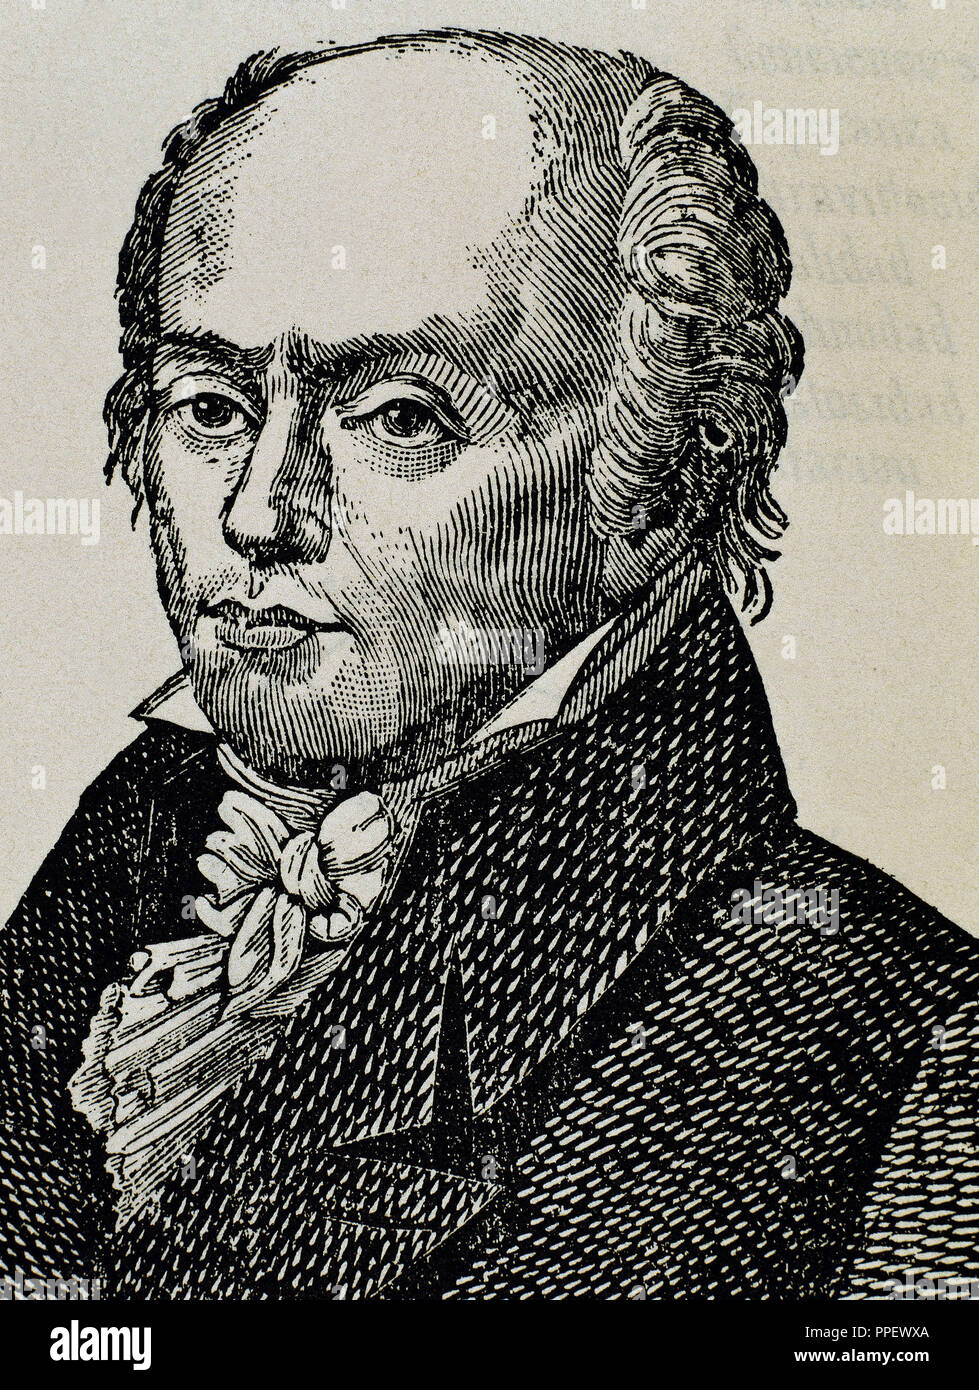 Franz Joseph Gall (1758 -1828). Neuroanatomist, physiologist, and pioneer in the study of the localization of mental functions in the brain. Engraving. - Stock Image